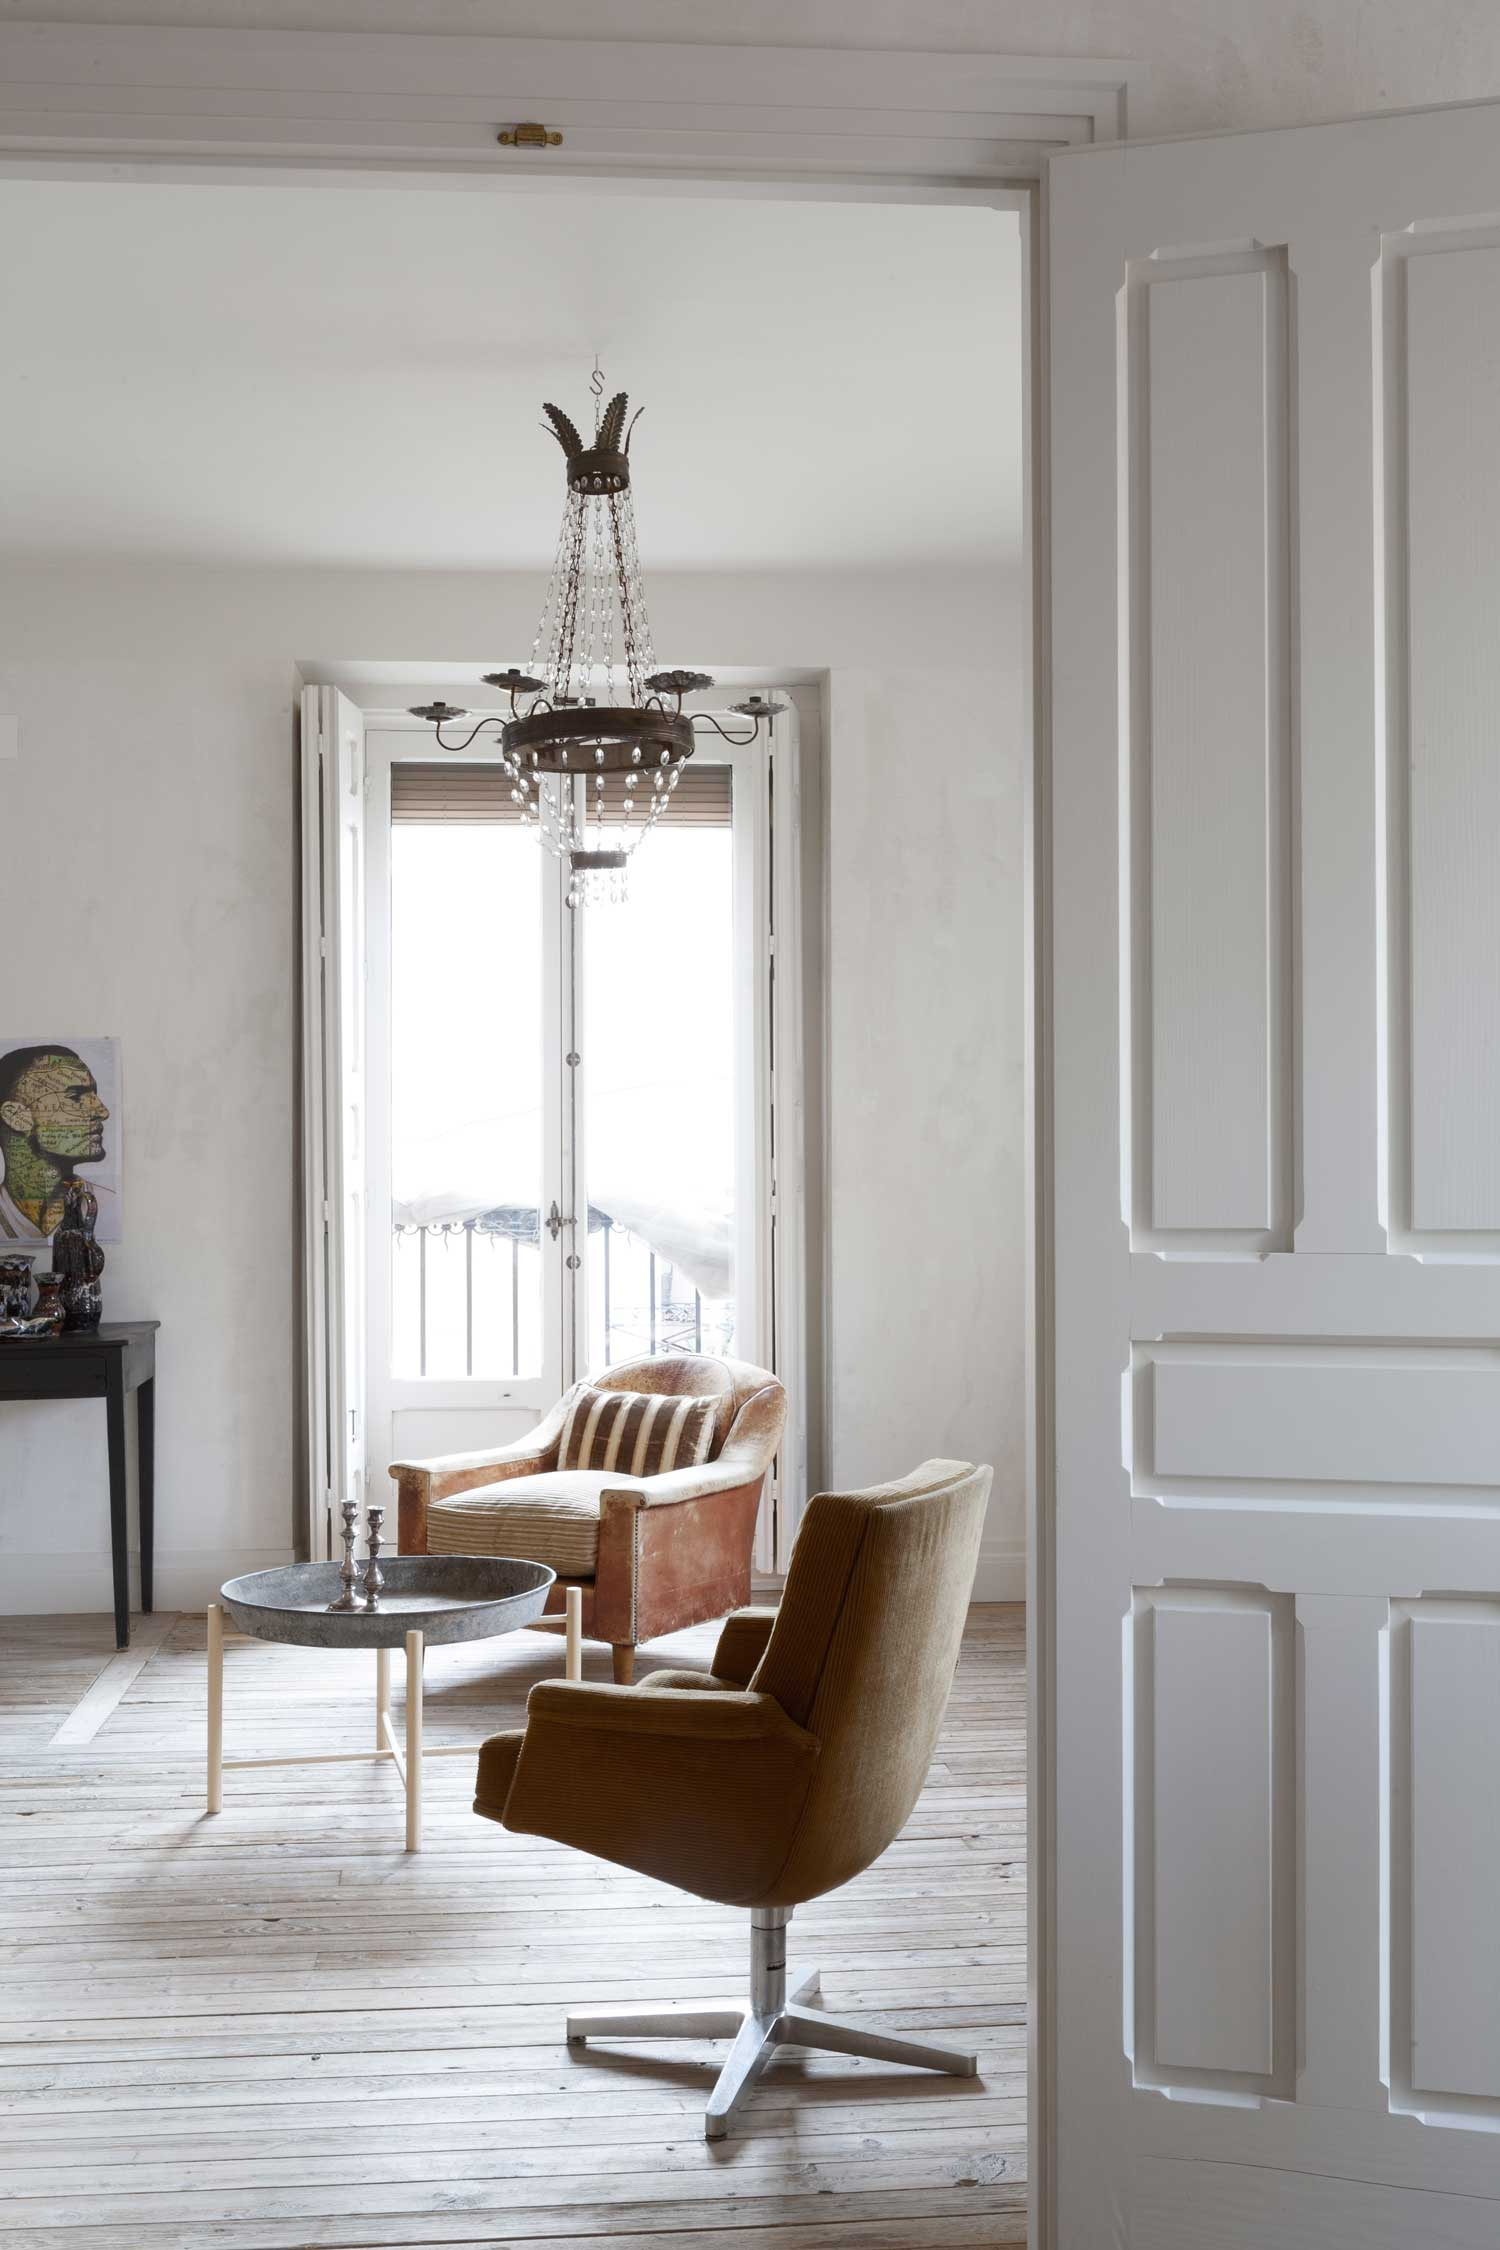 Gallery Post // Refurbished Madrid Apartment by Erico Navazo | Yellowtrace